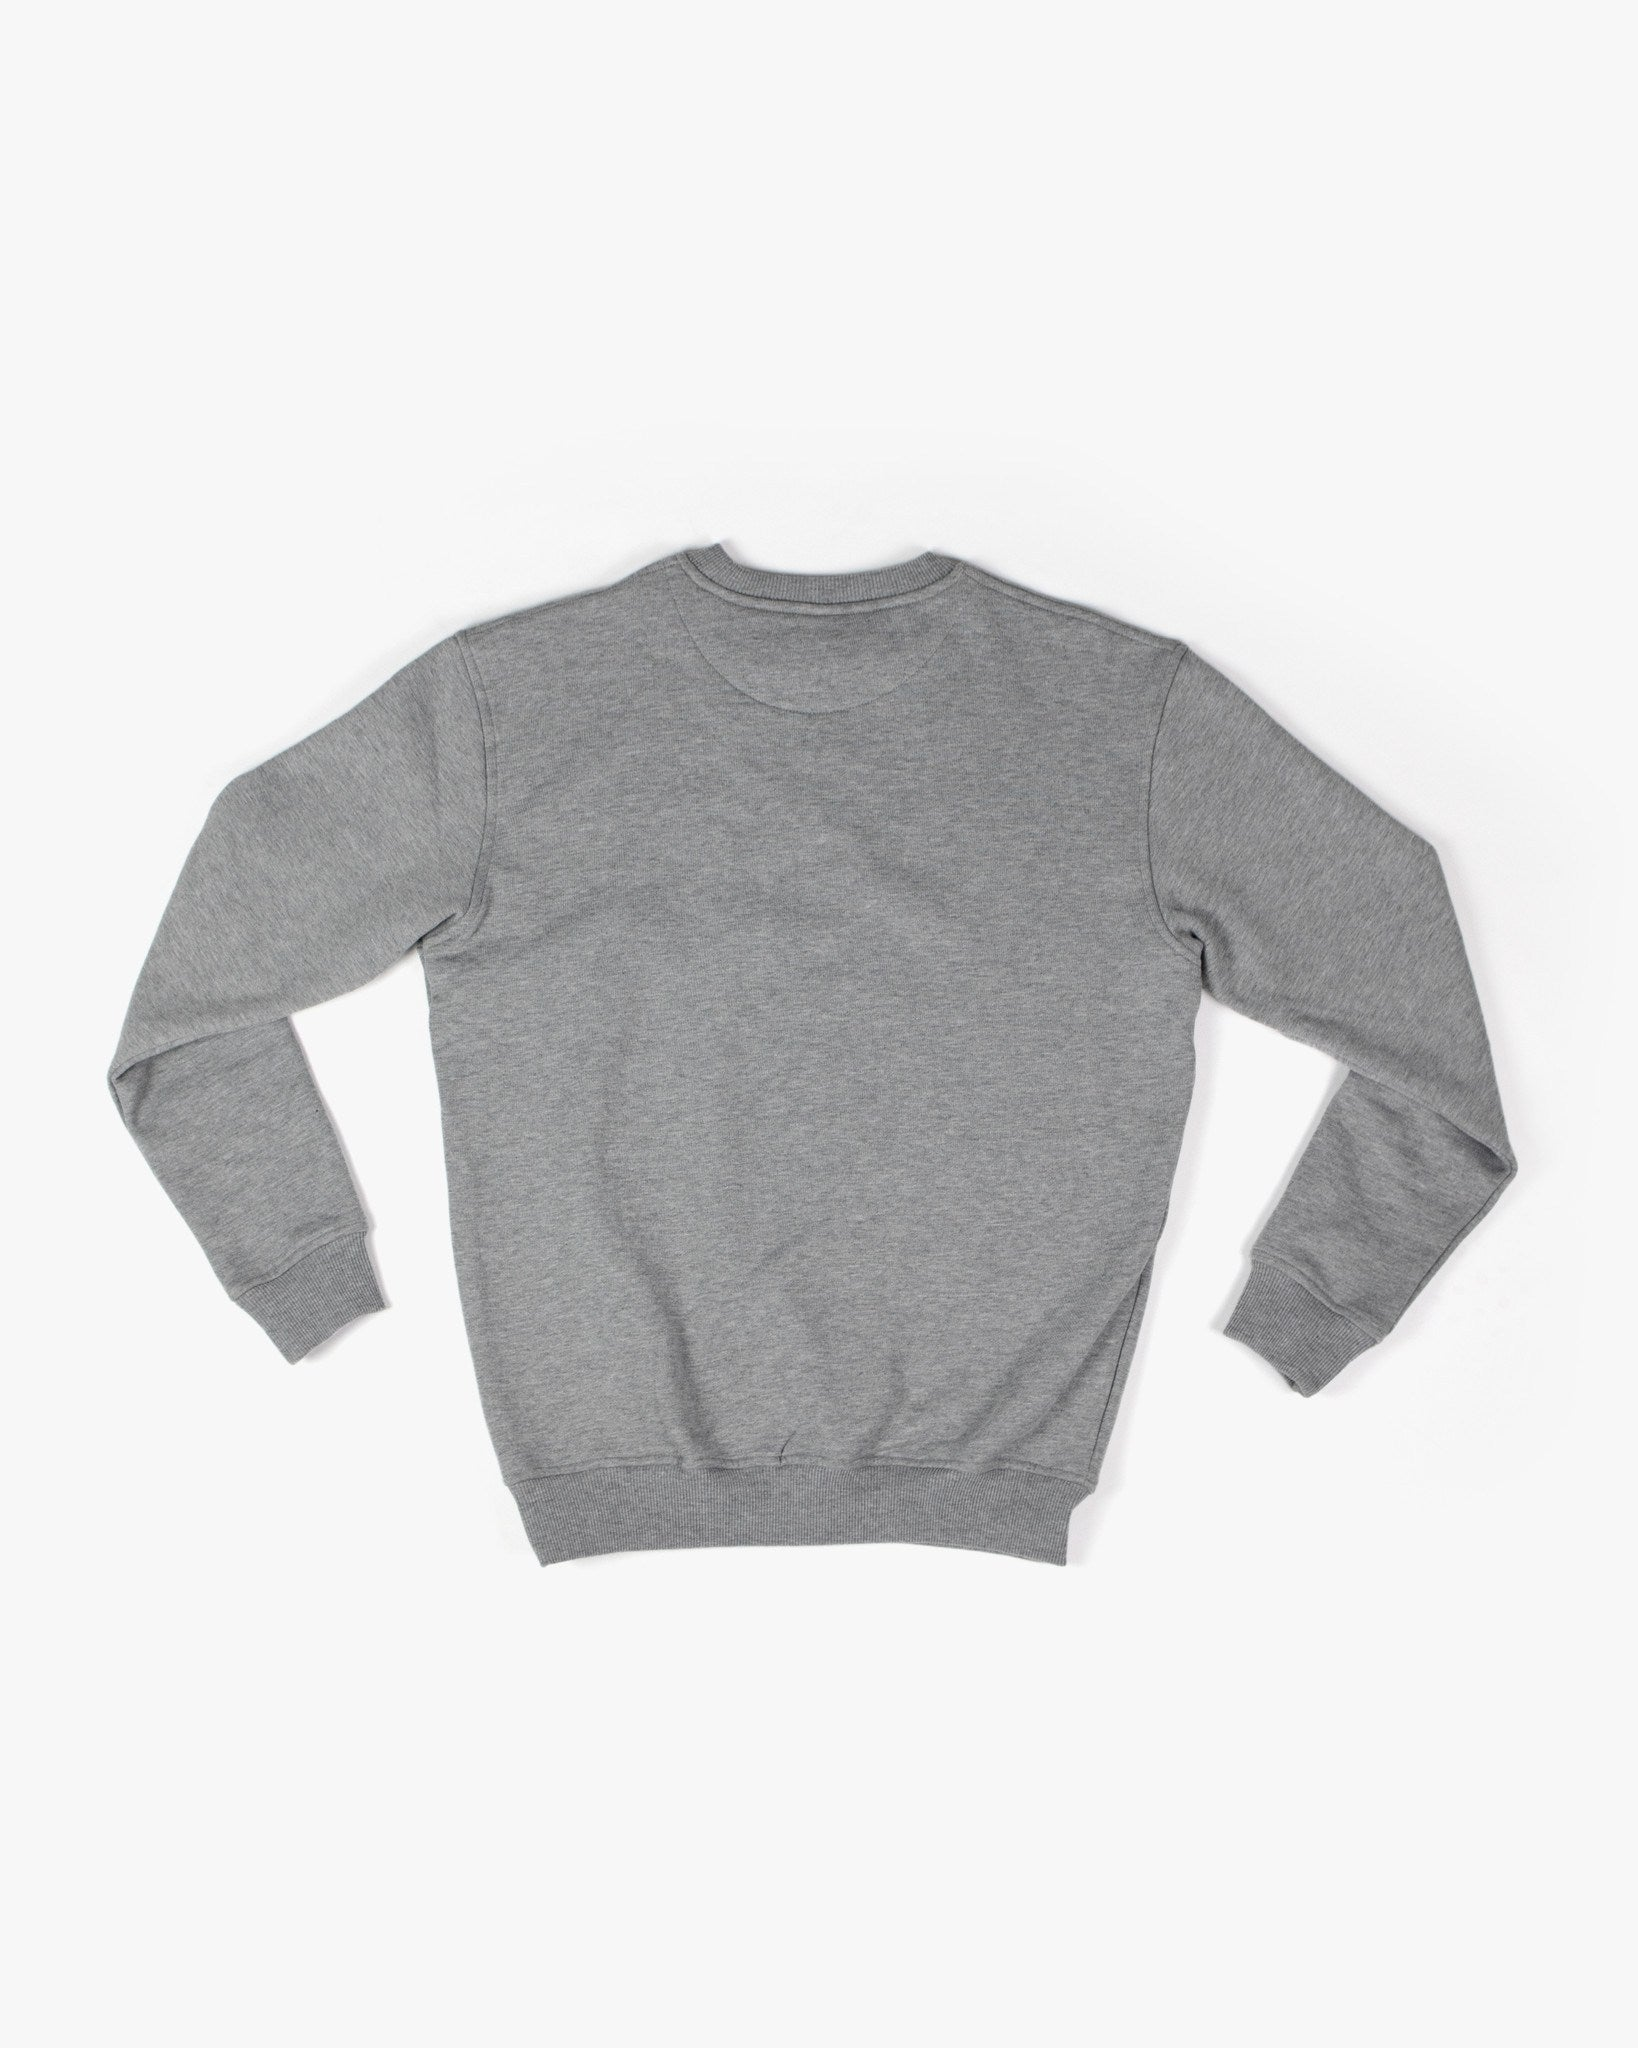 Rave crewneck for techno outfits